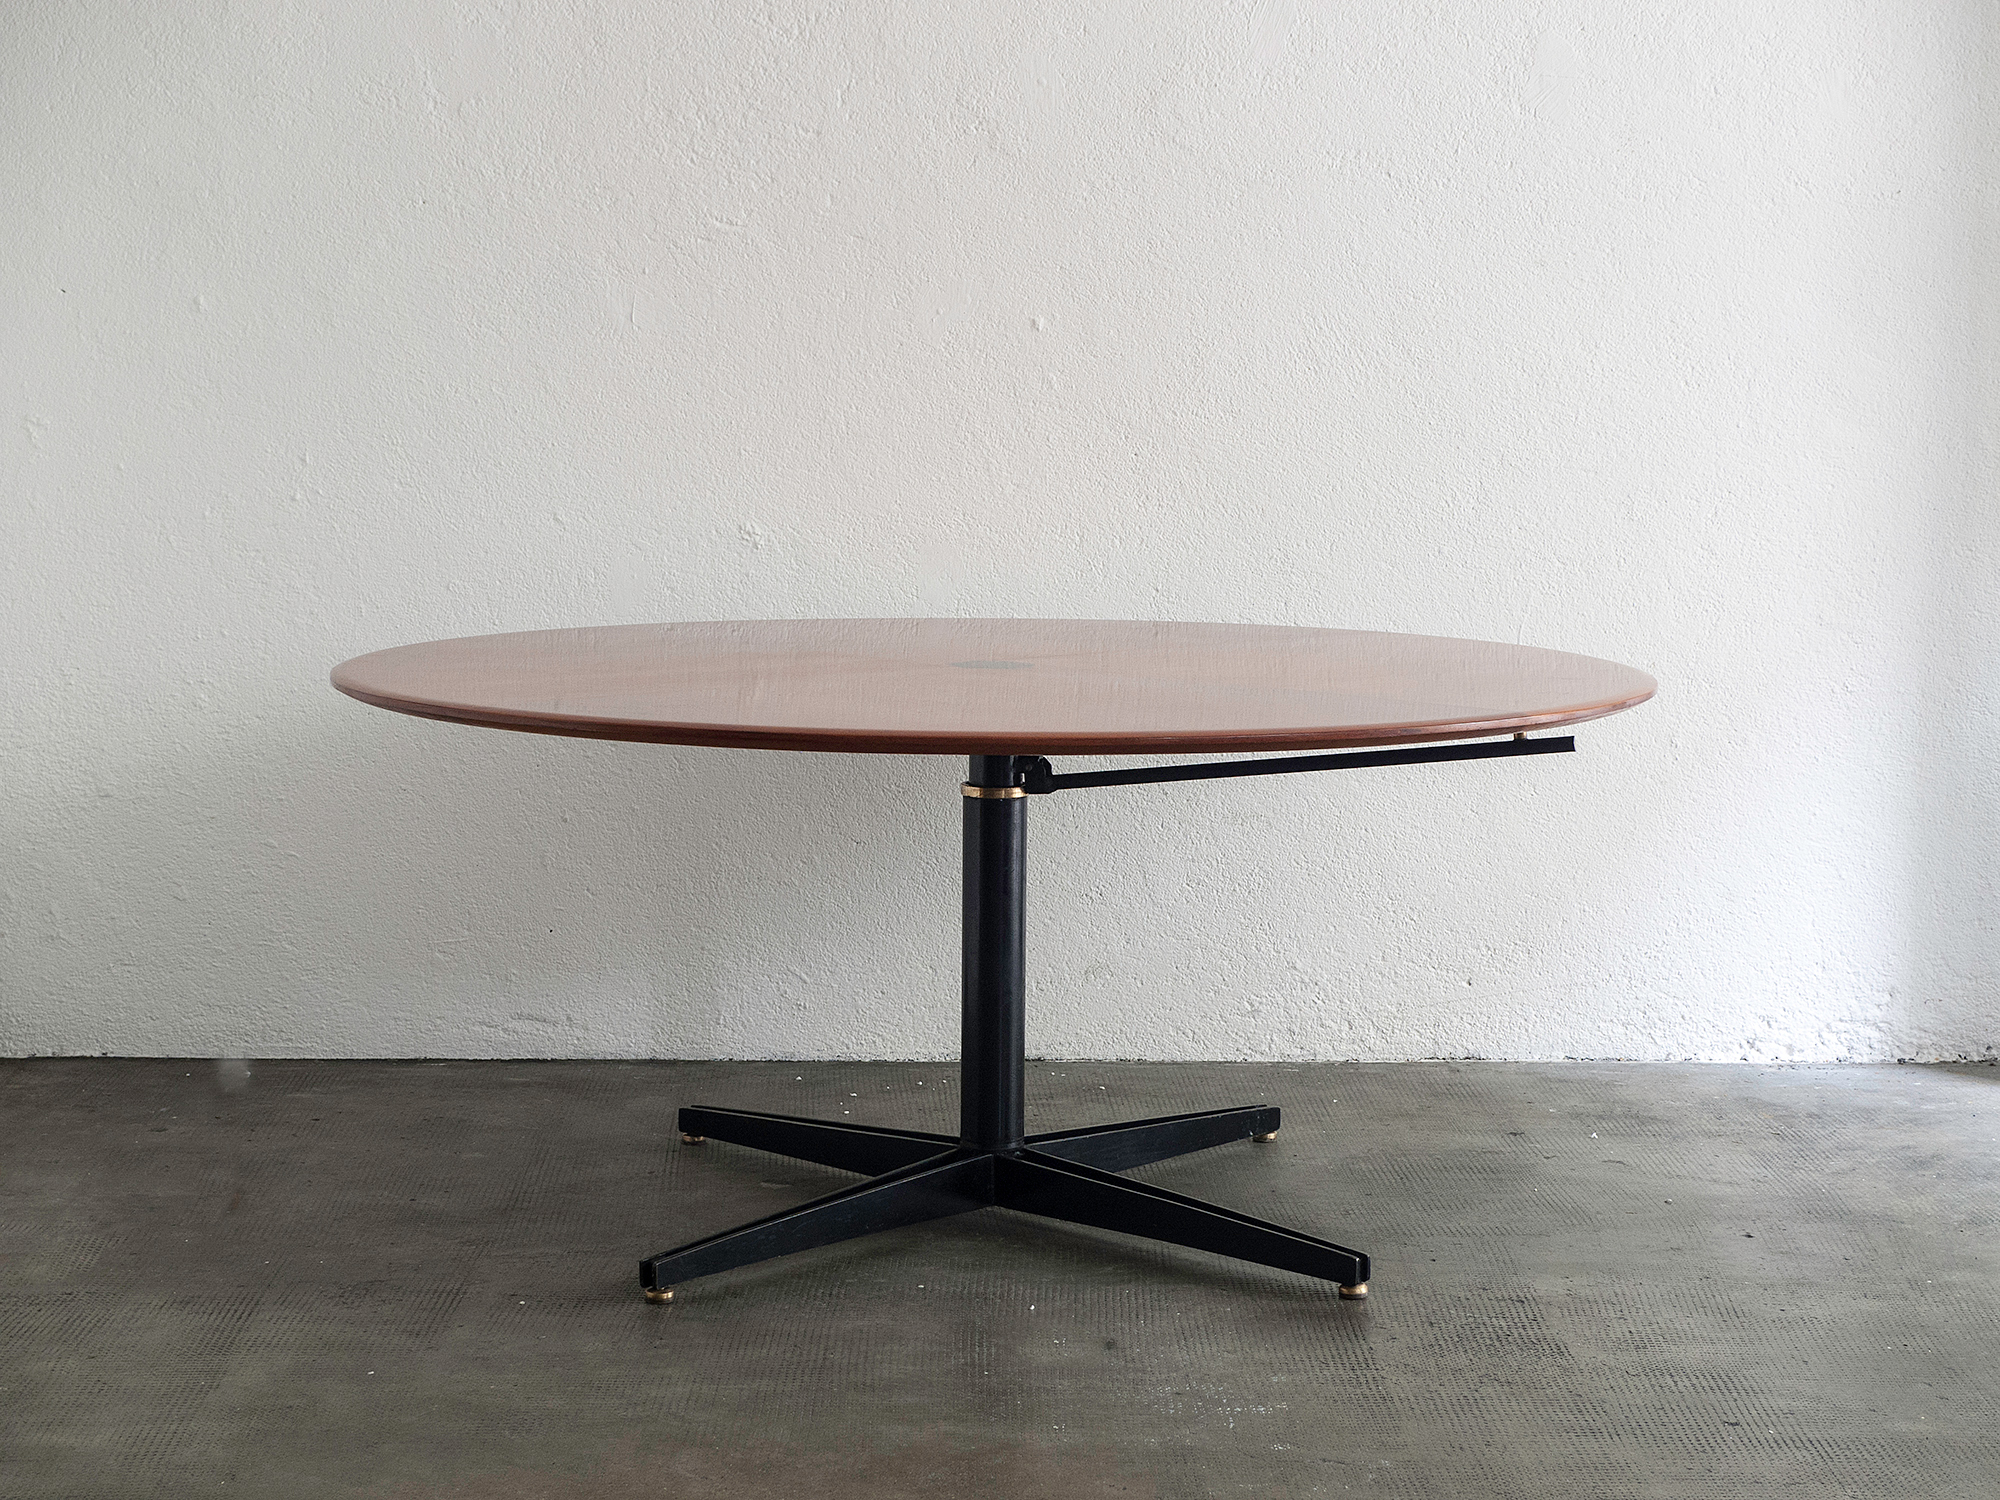 t41-adjustable-table-by-osvaldo-borsani-image-03